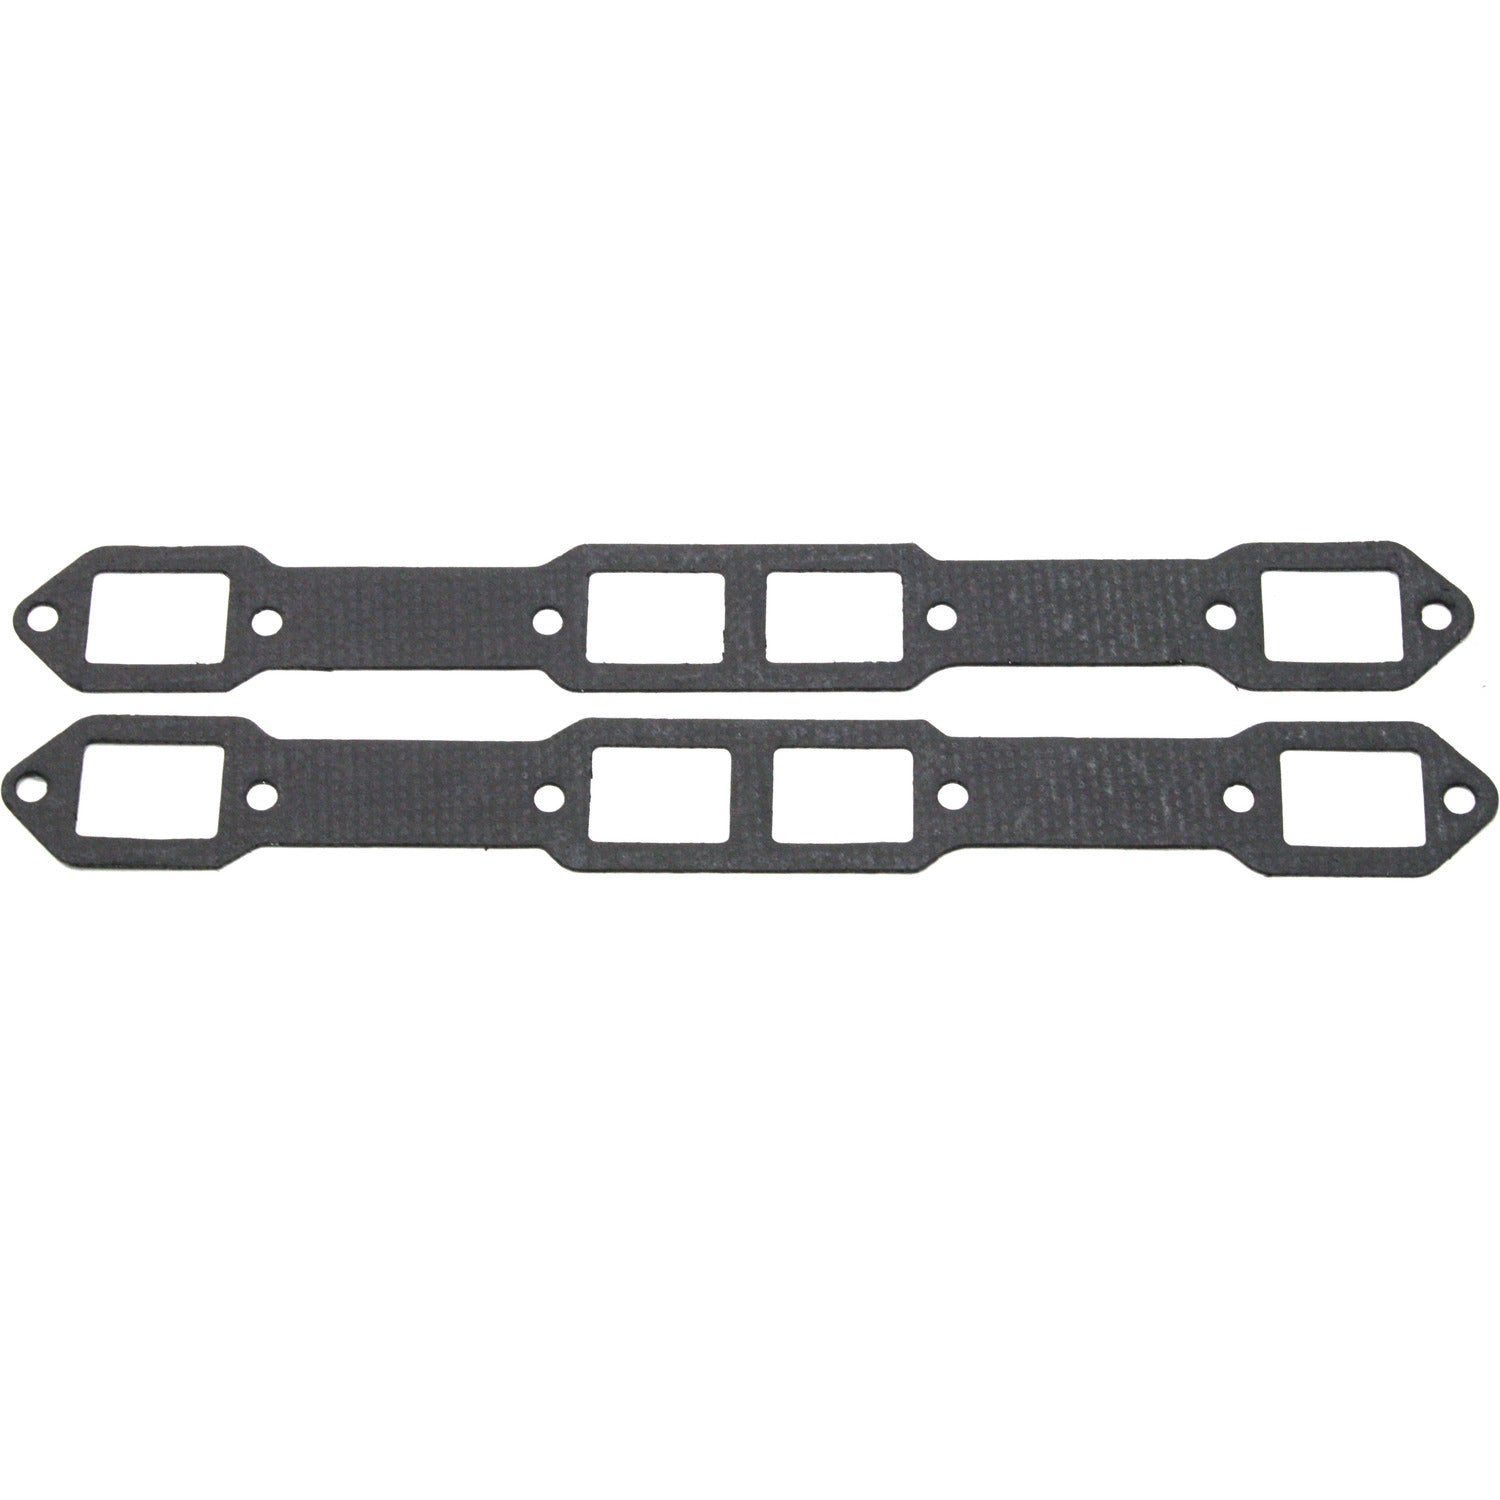 "Patriot Exhaust Header Gaskets Mopar 383-440 excluding Hemi 1 7/8"" Primaries Rectangular Port, pair"